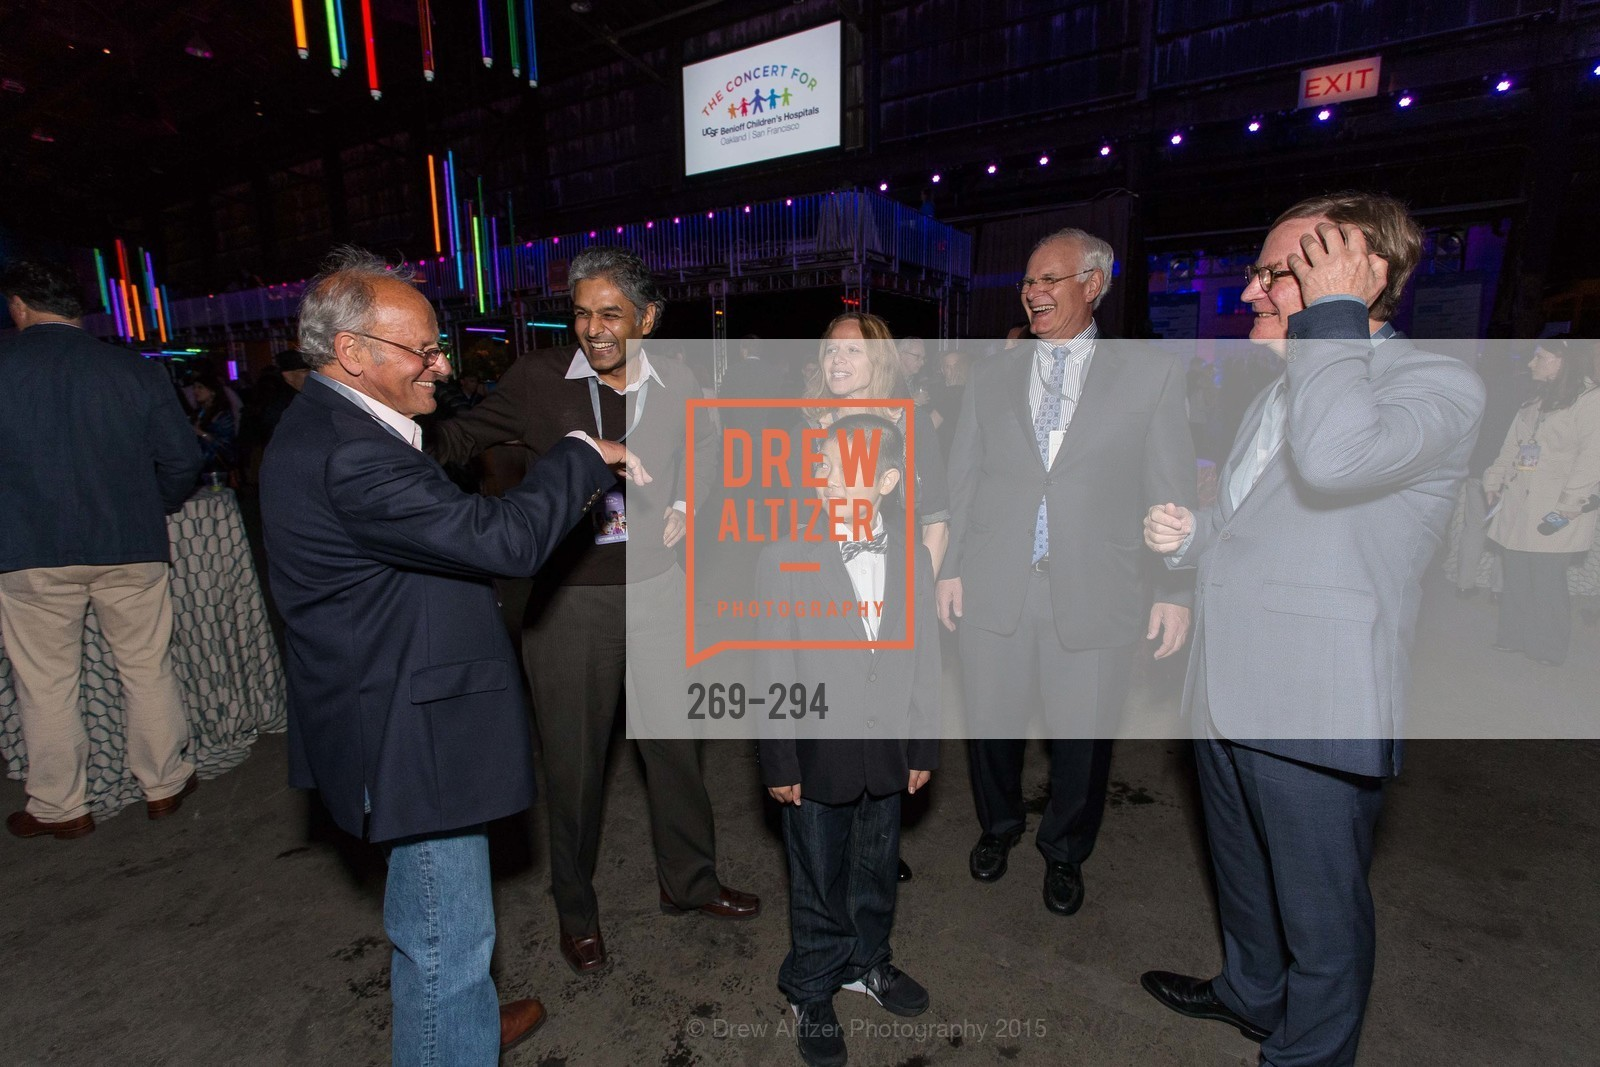 Burt Lubin, Anu Agrawal, Jennifer Michlitsch, Zhenkang Zhao, Mark Laret, Sam Hawgood, The Concert For UCSF Benioff Children's Hospital, Pier 70, September 17th, 2015,Drew Altizer, Drew Altizer Photography, full-service event agency, private events, San Francisco photographer, photographer California